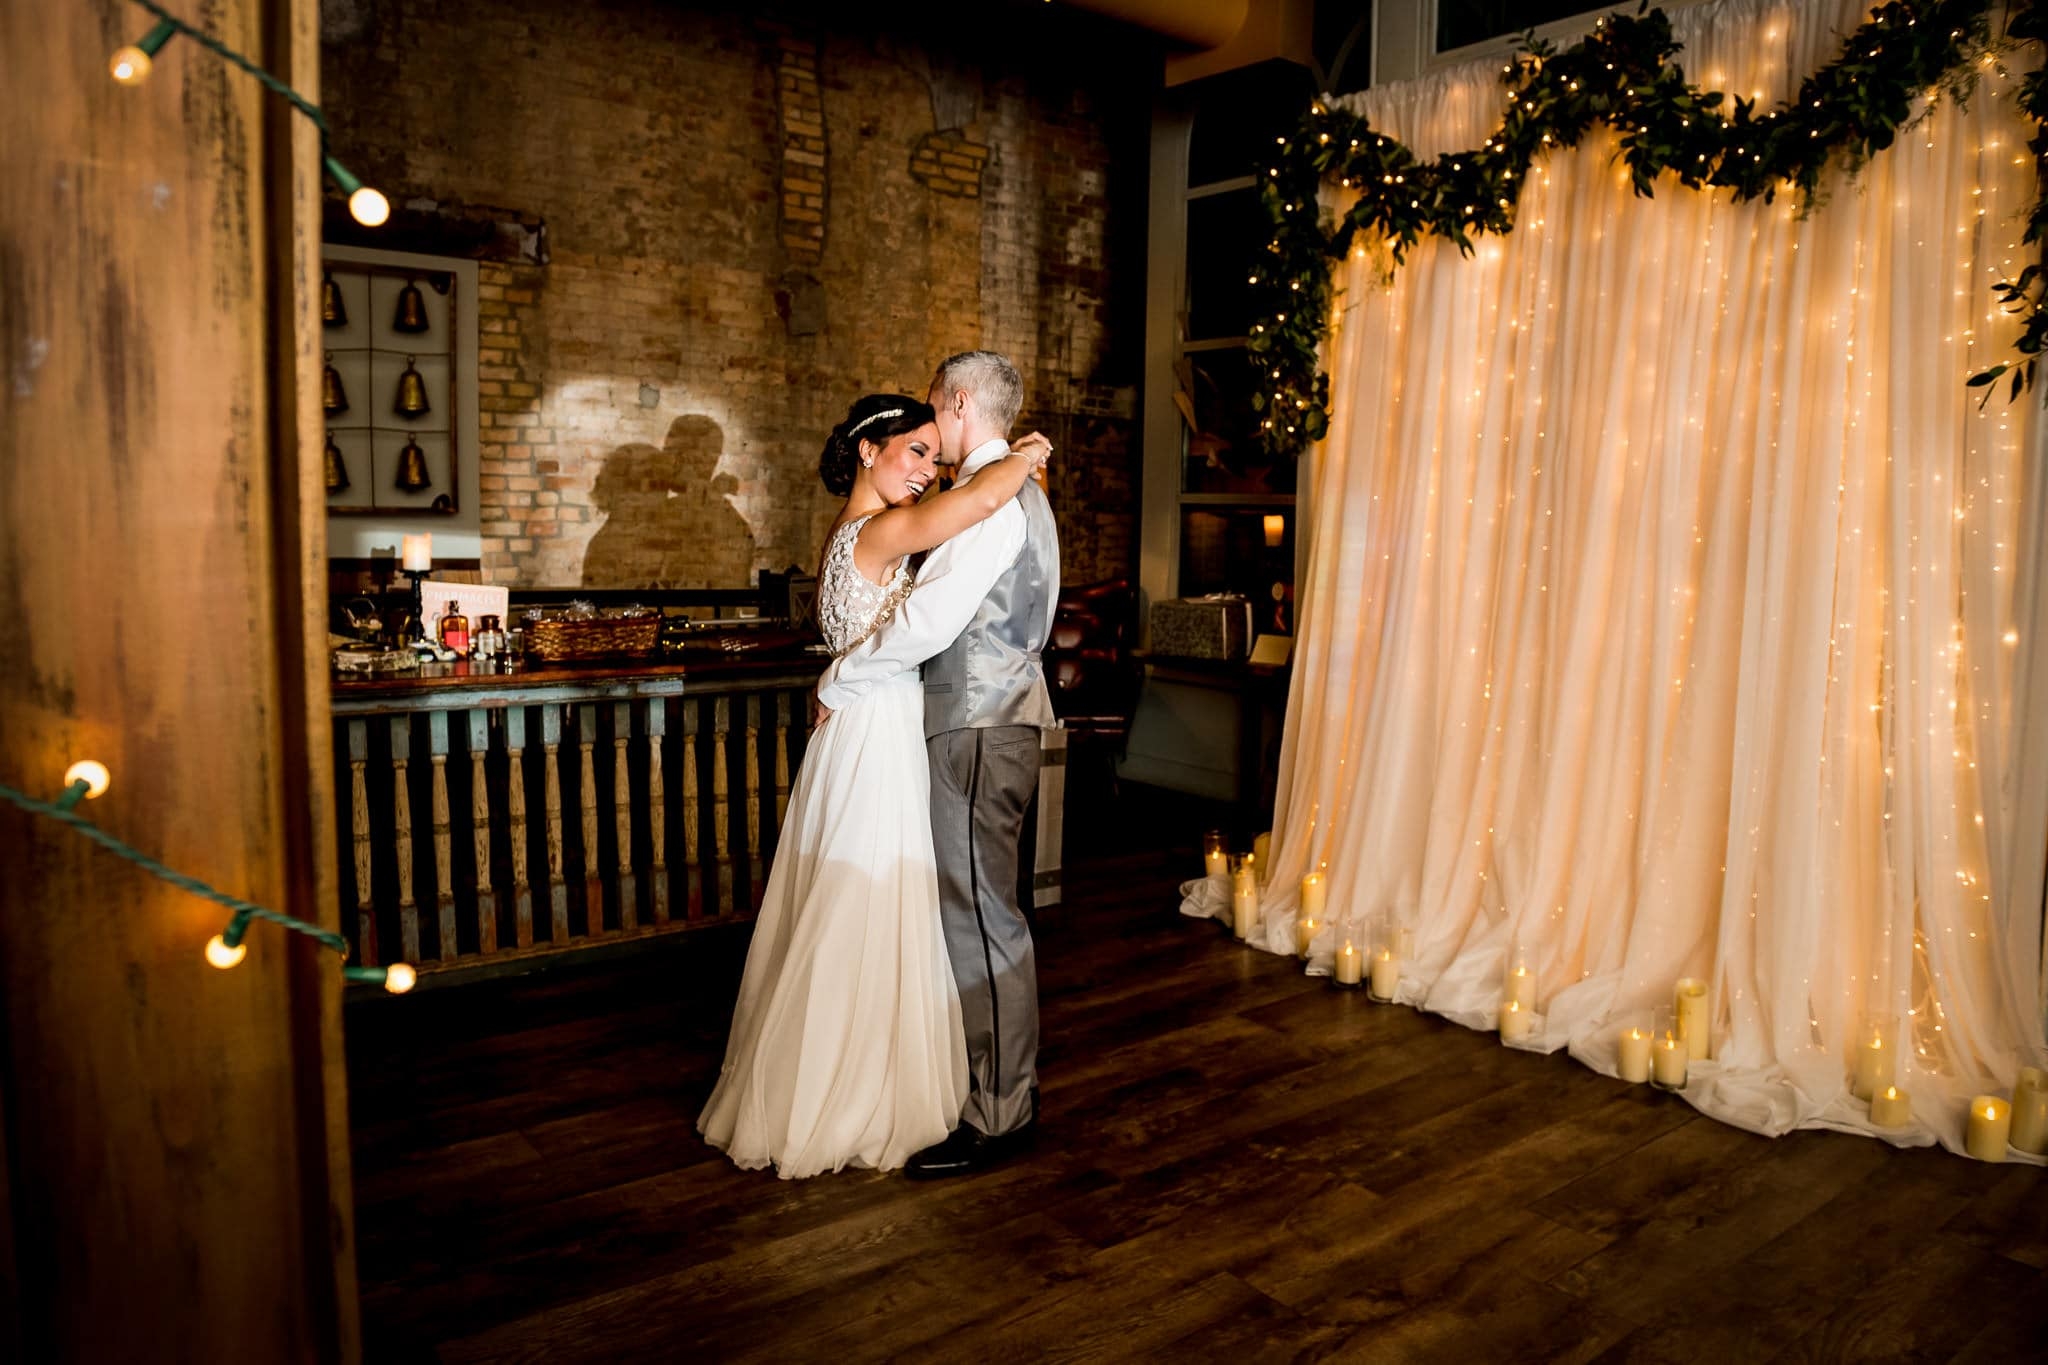 Bride and Groom sharing their First Dance in the River Room at Aster Cafe